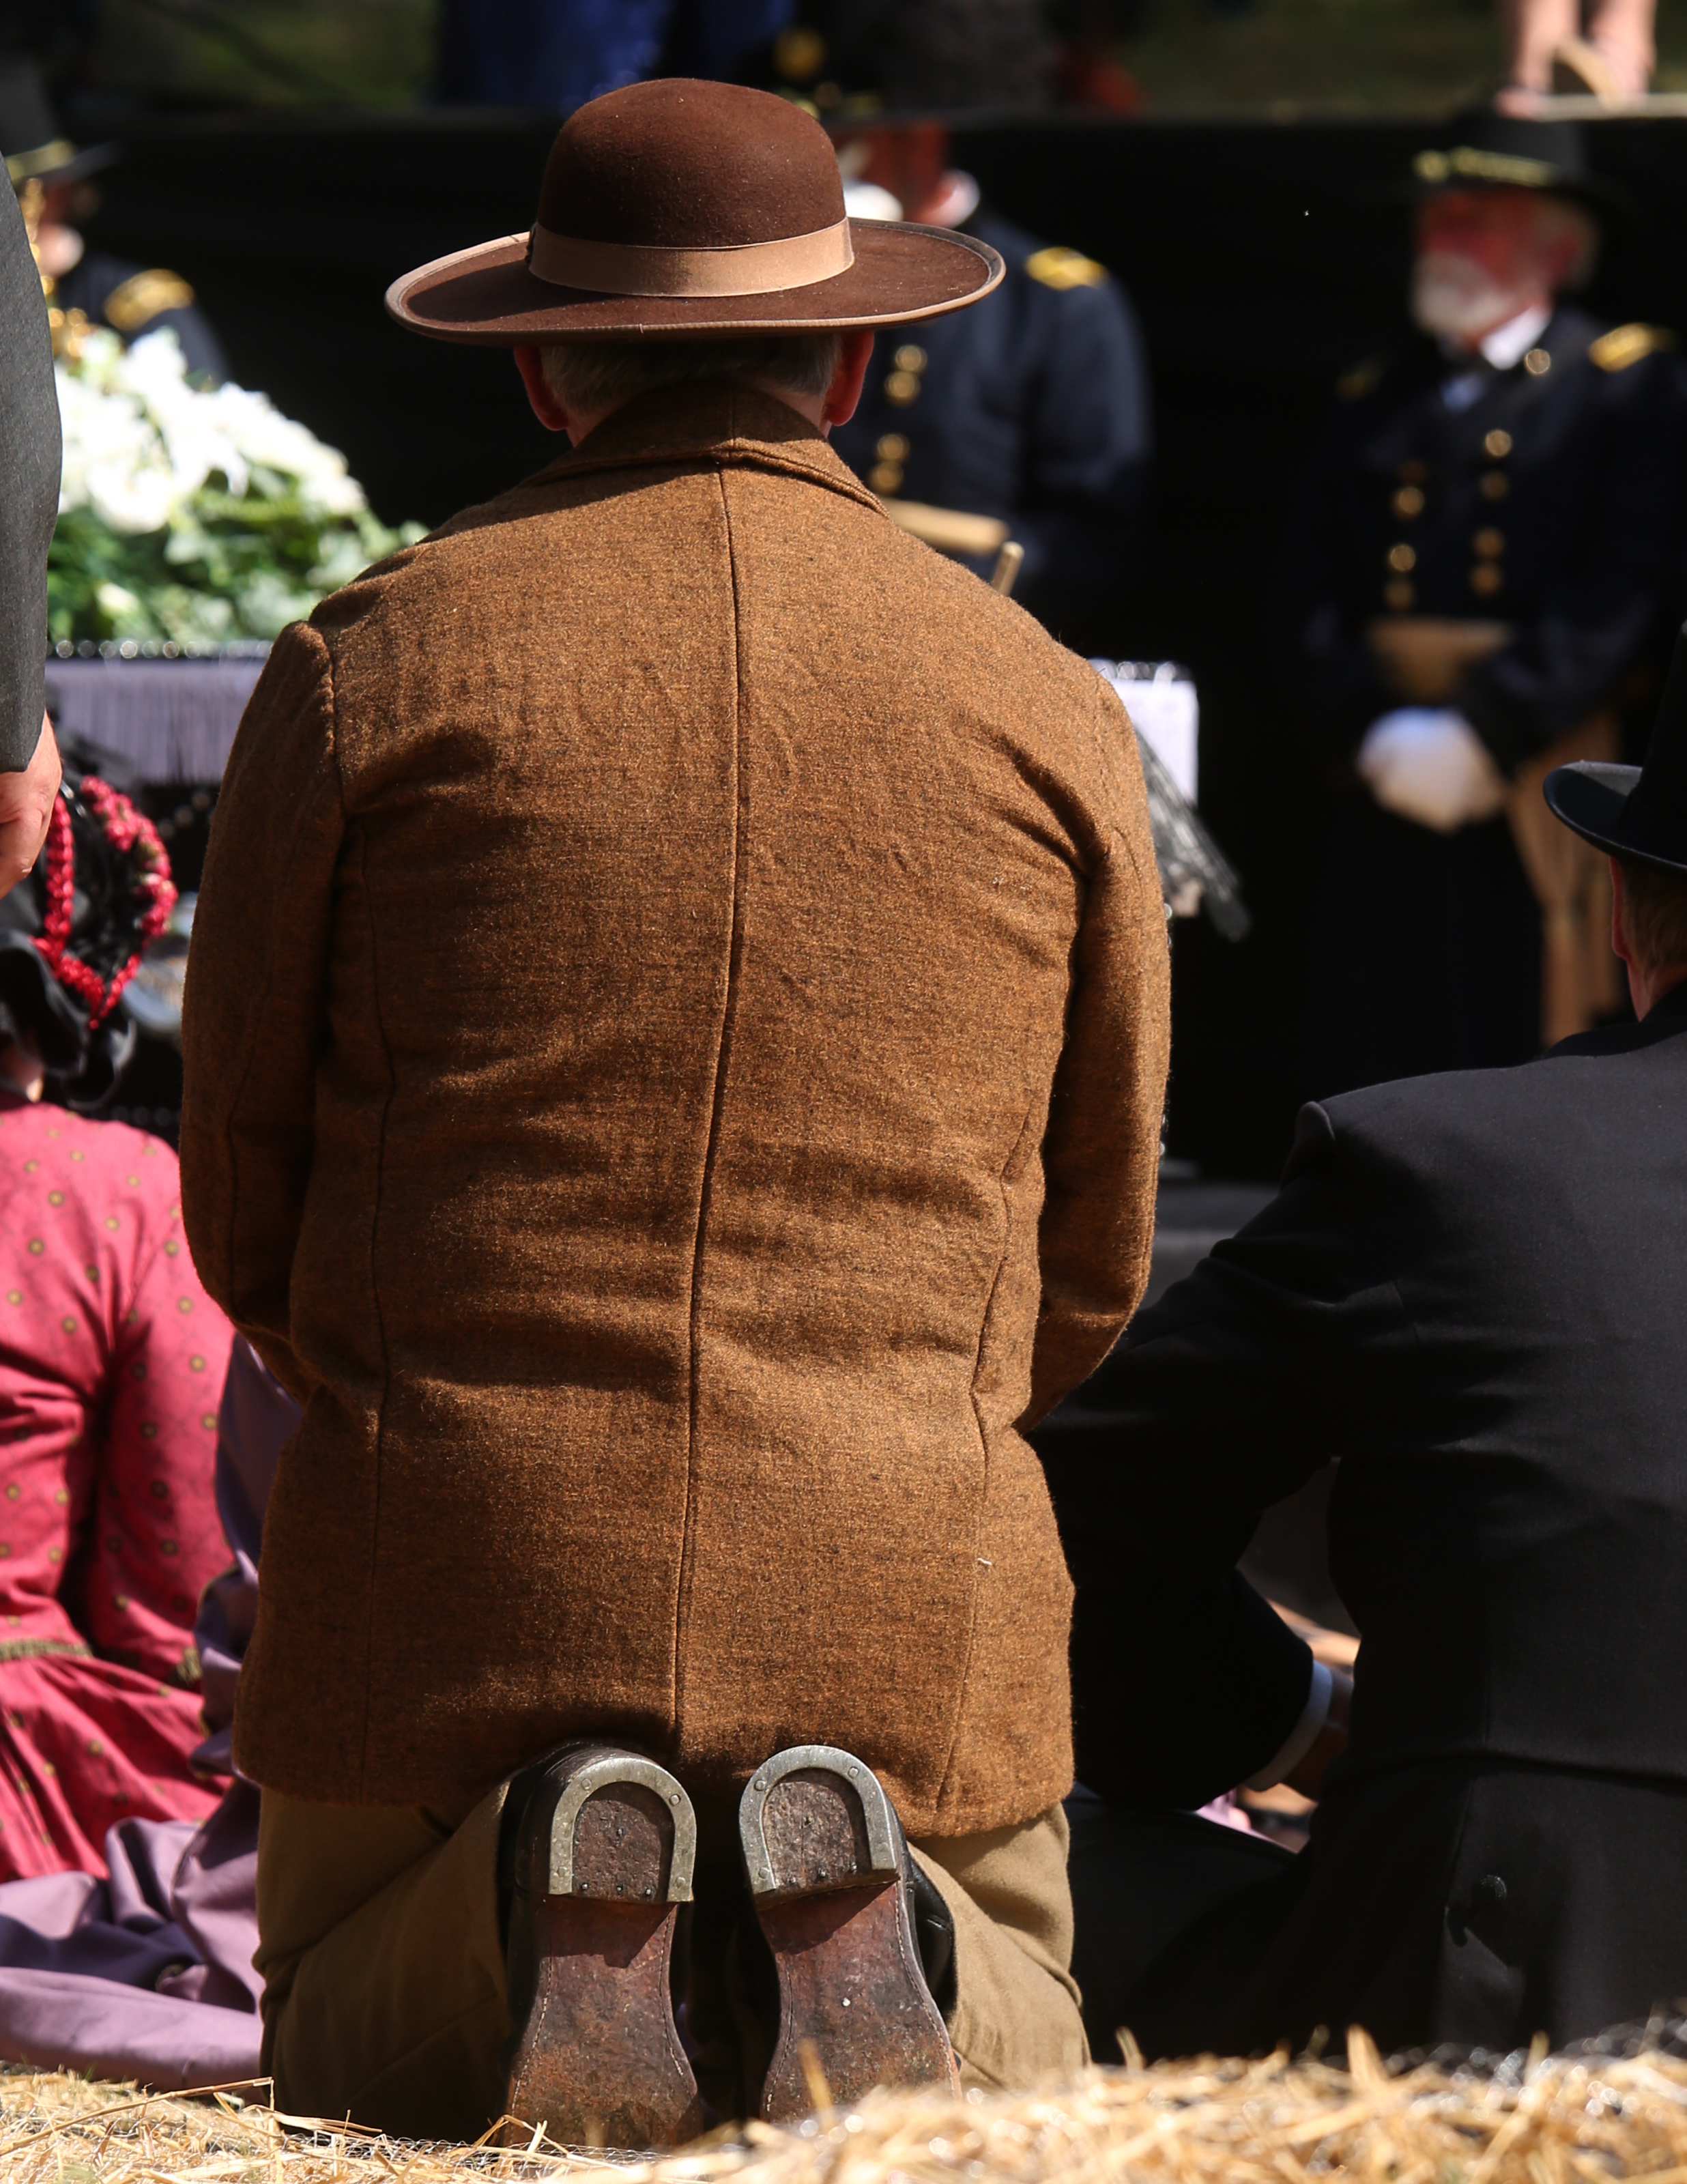 A re-enactor kneelsin front of the coffin during the funeral service at the receiving vault Sunday atOak Ridge Cemetery. David Spencer/The State Journal-Register